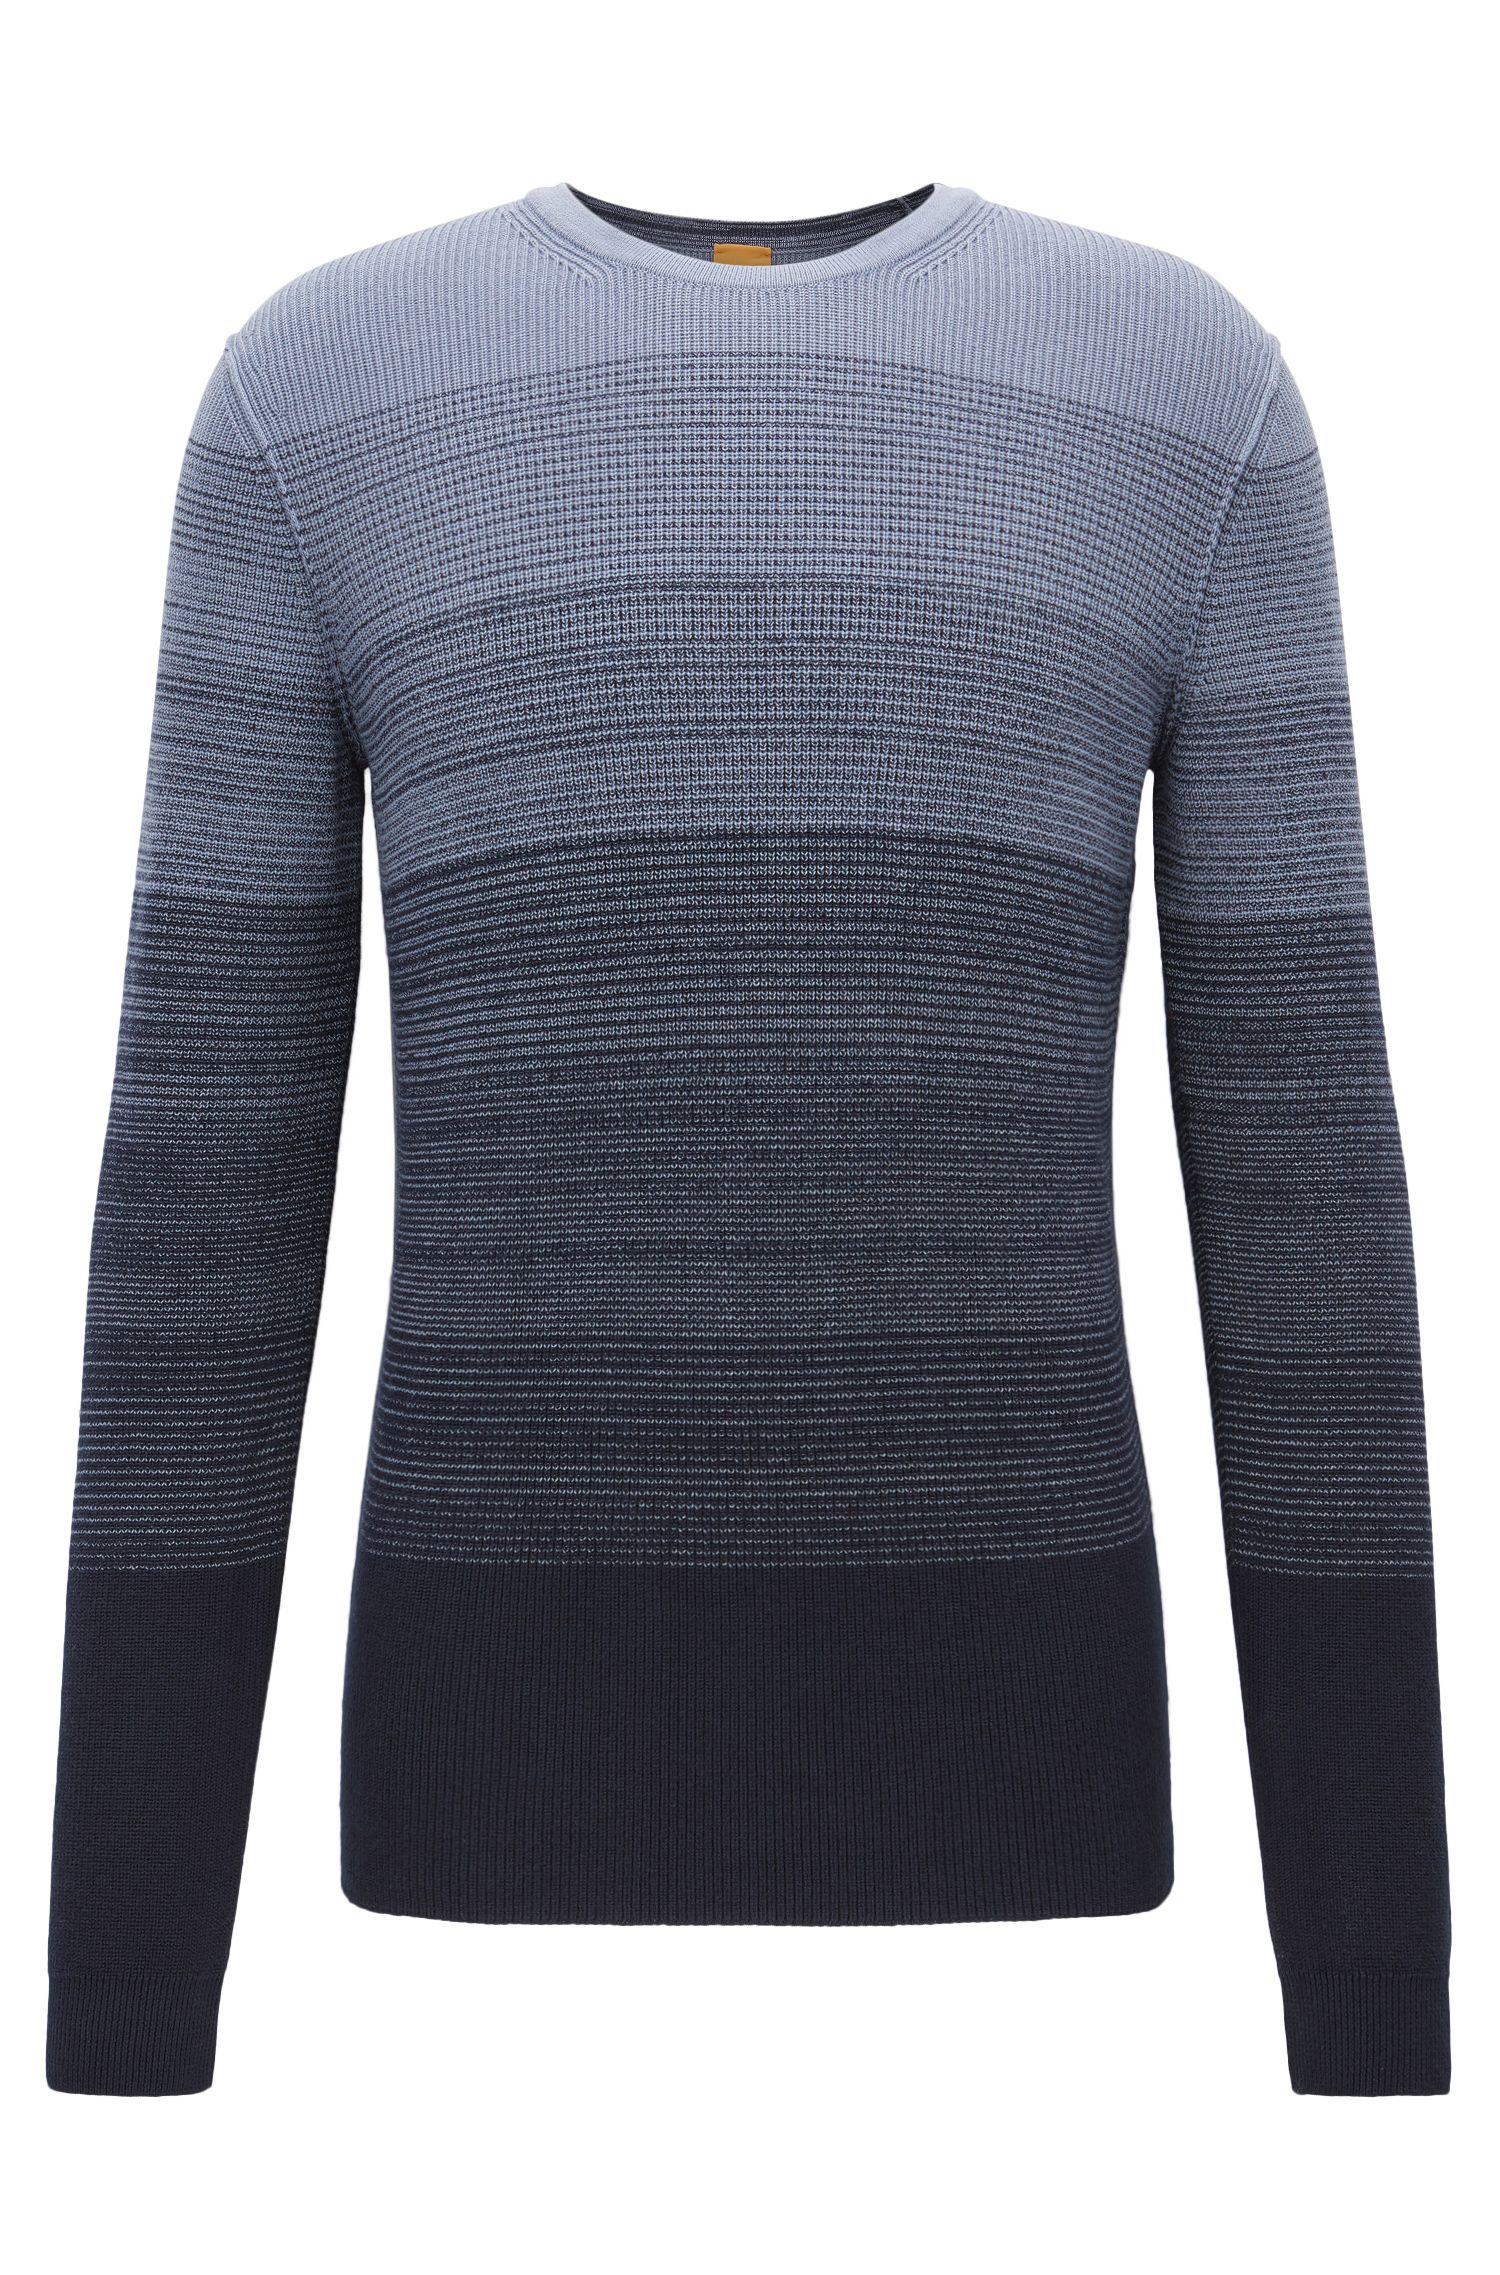 Cotton sweater with dégradé rib structure